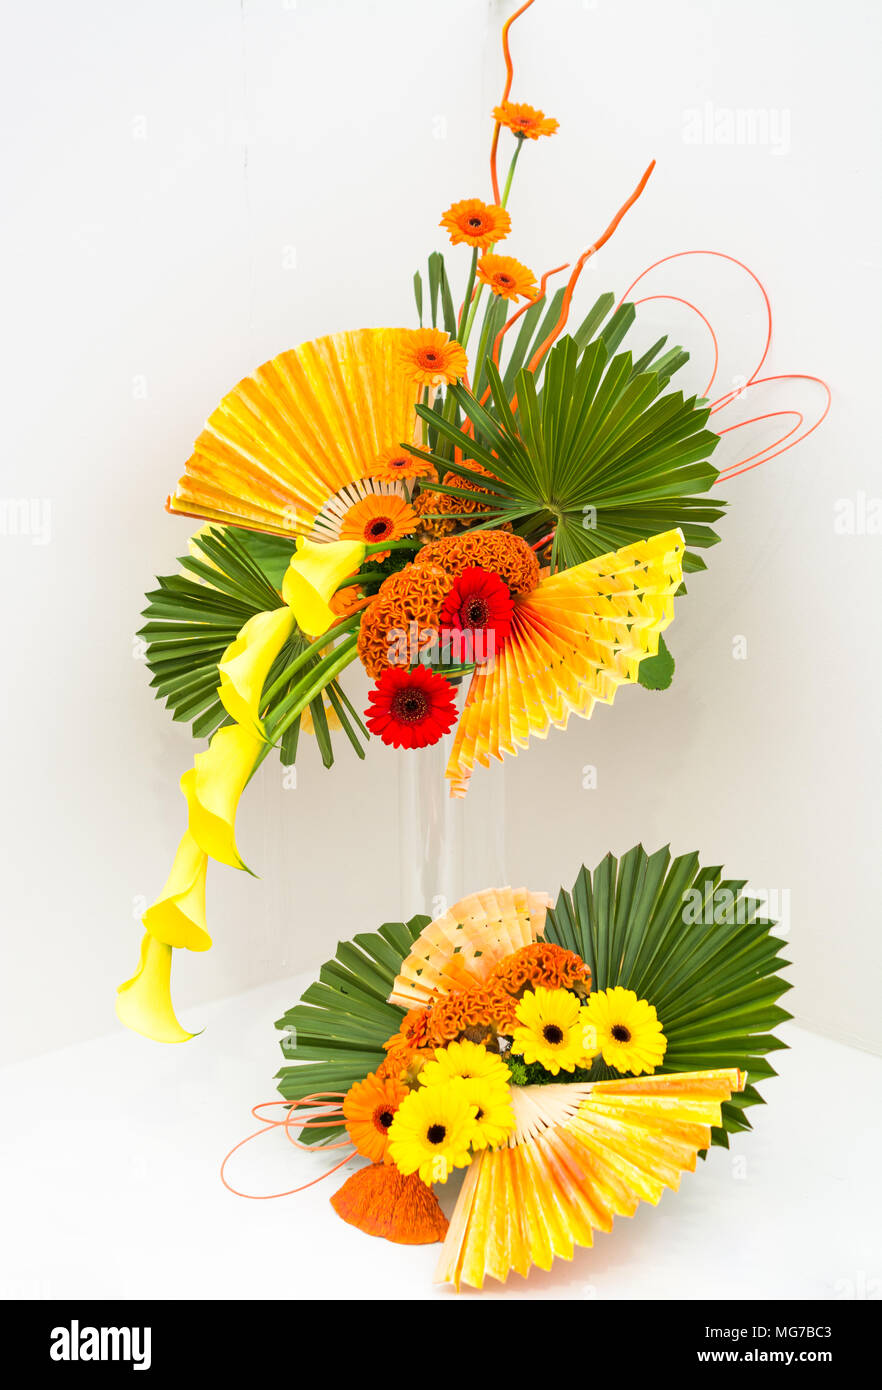 Orange And Yellow Floral Arrangement On A White Background Stock